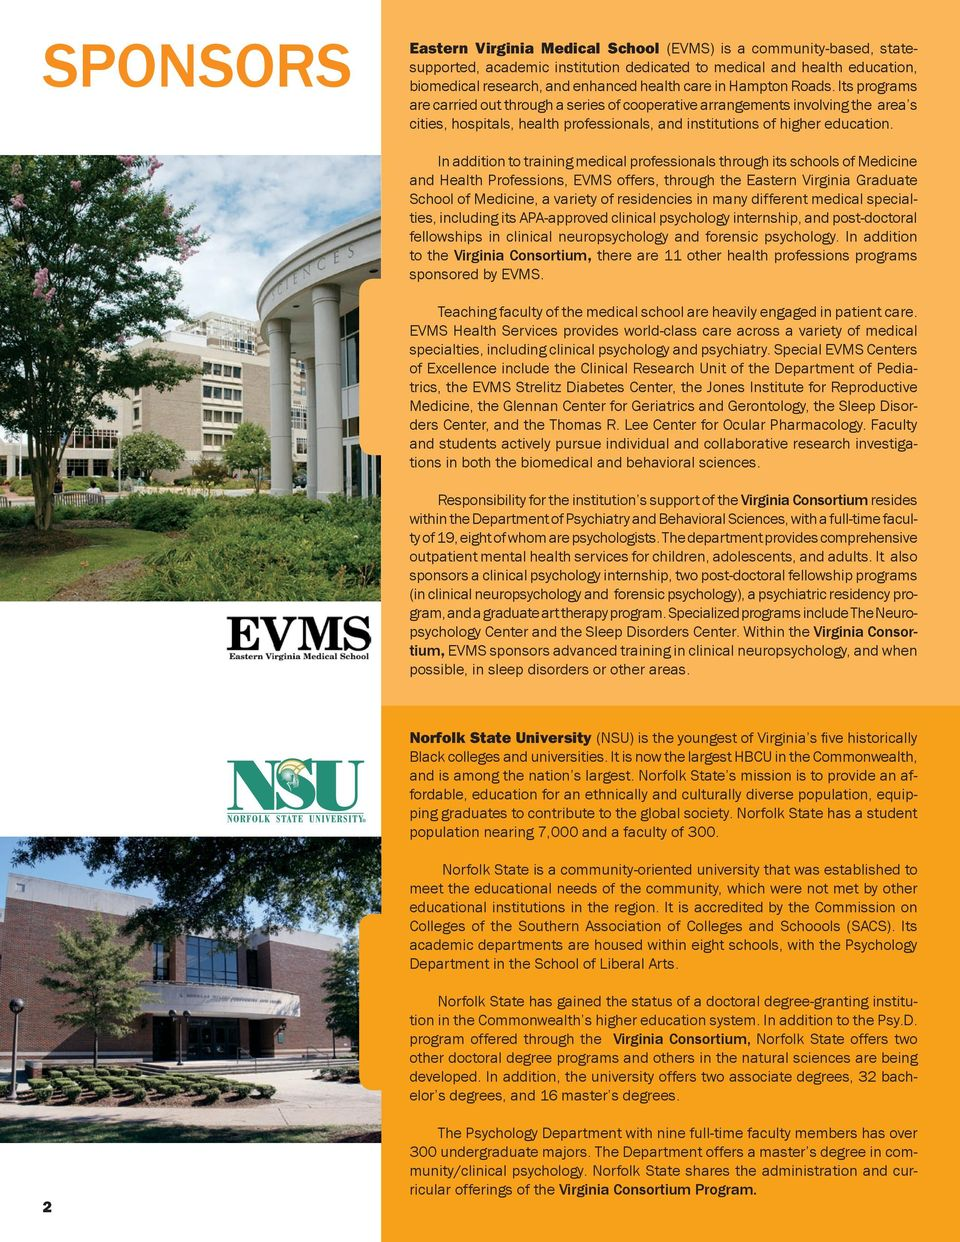 In addition to training medical professionals through its schools of Medicine and Health Professions, EVMS offers, through the Eastern Virginia Graduate School of Medicine, a variety of residencies